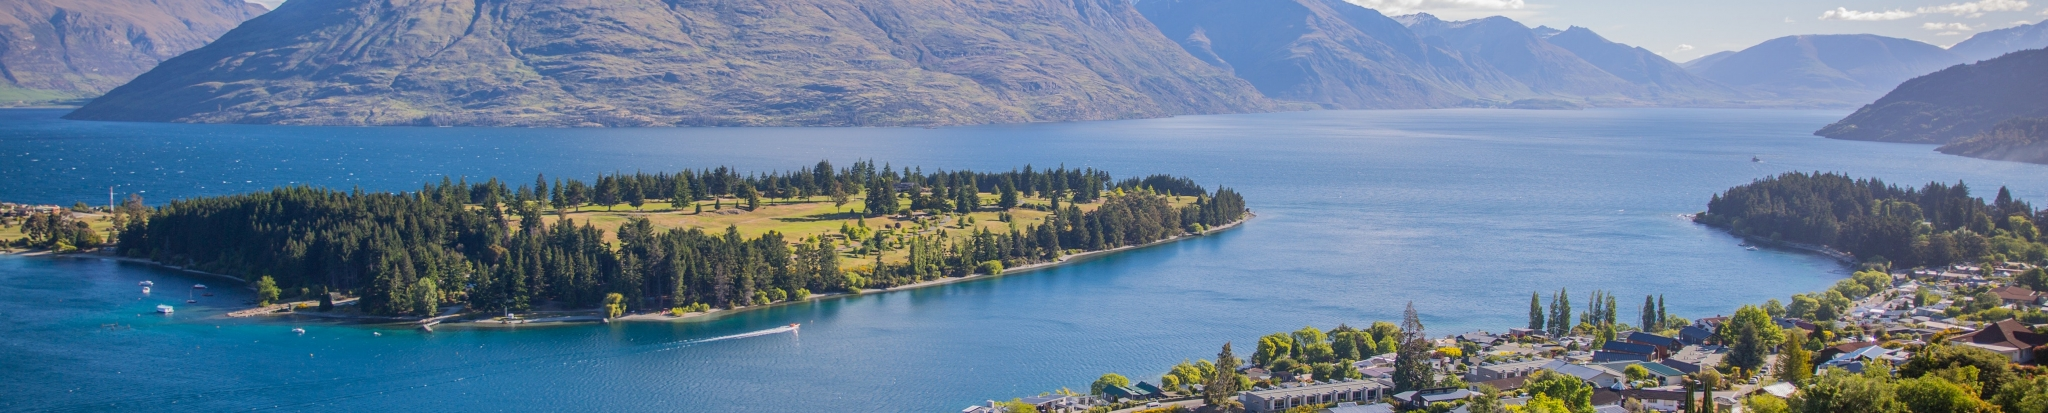 Lake with an island in the middle of it - New Zealand